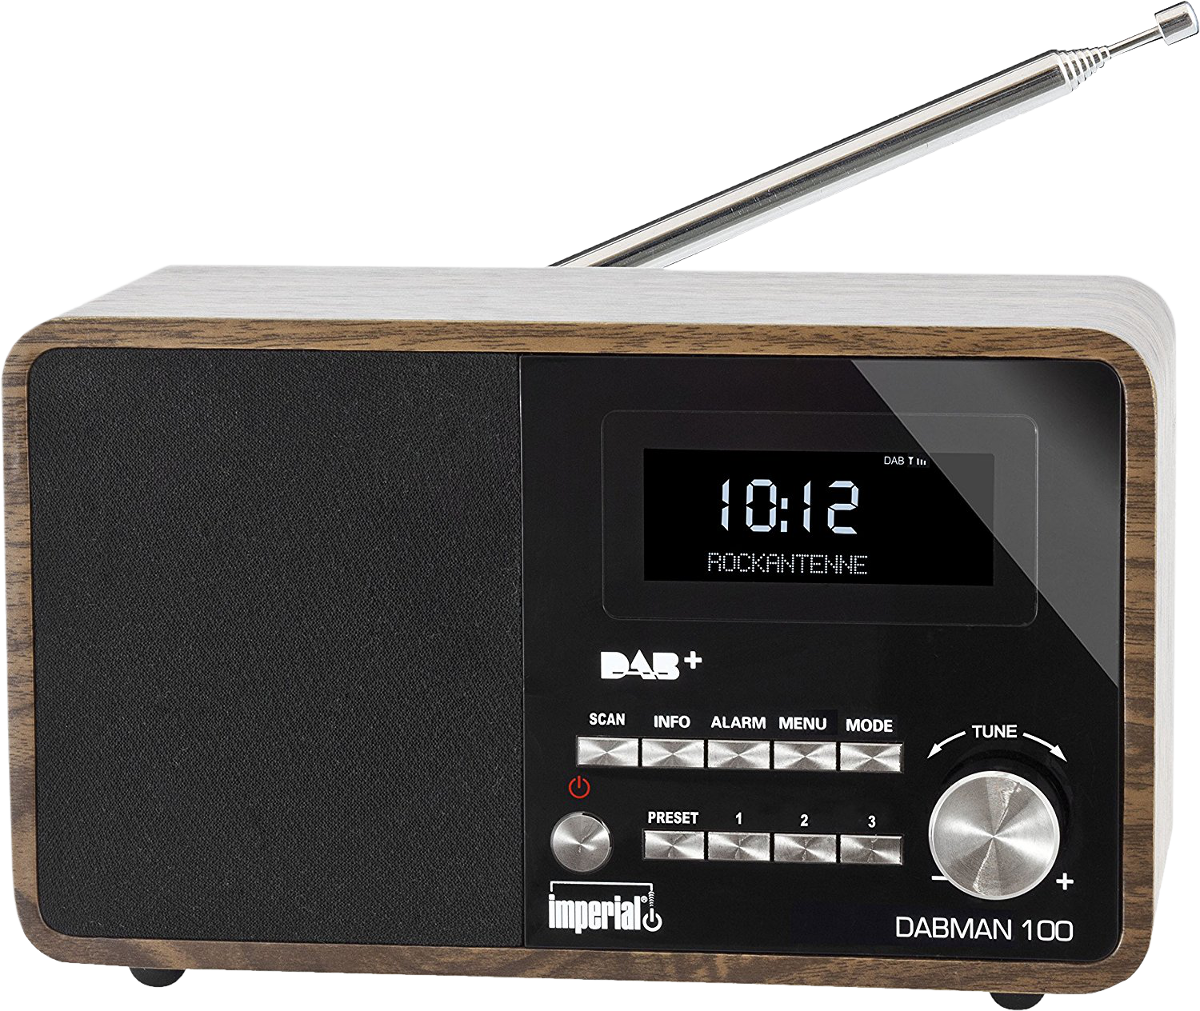 imperial dabman 100 mono radio dab fm braun. Black Bedroom Furniture Sets. Home Design Ideas